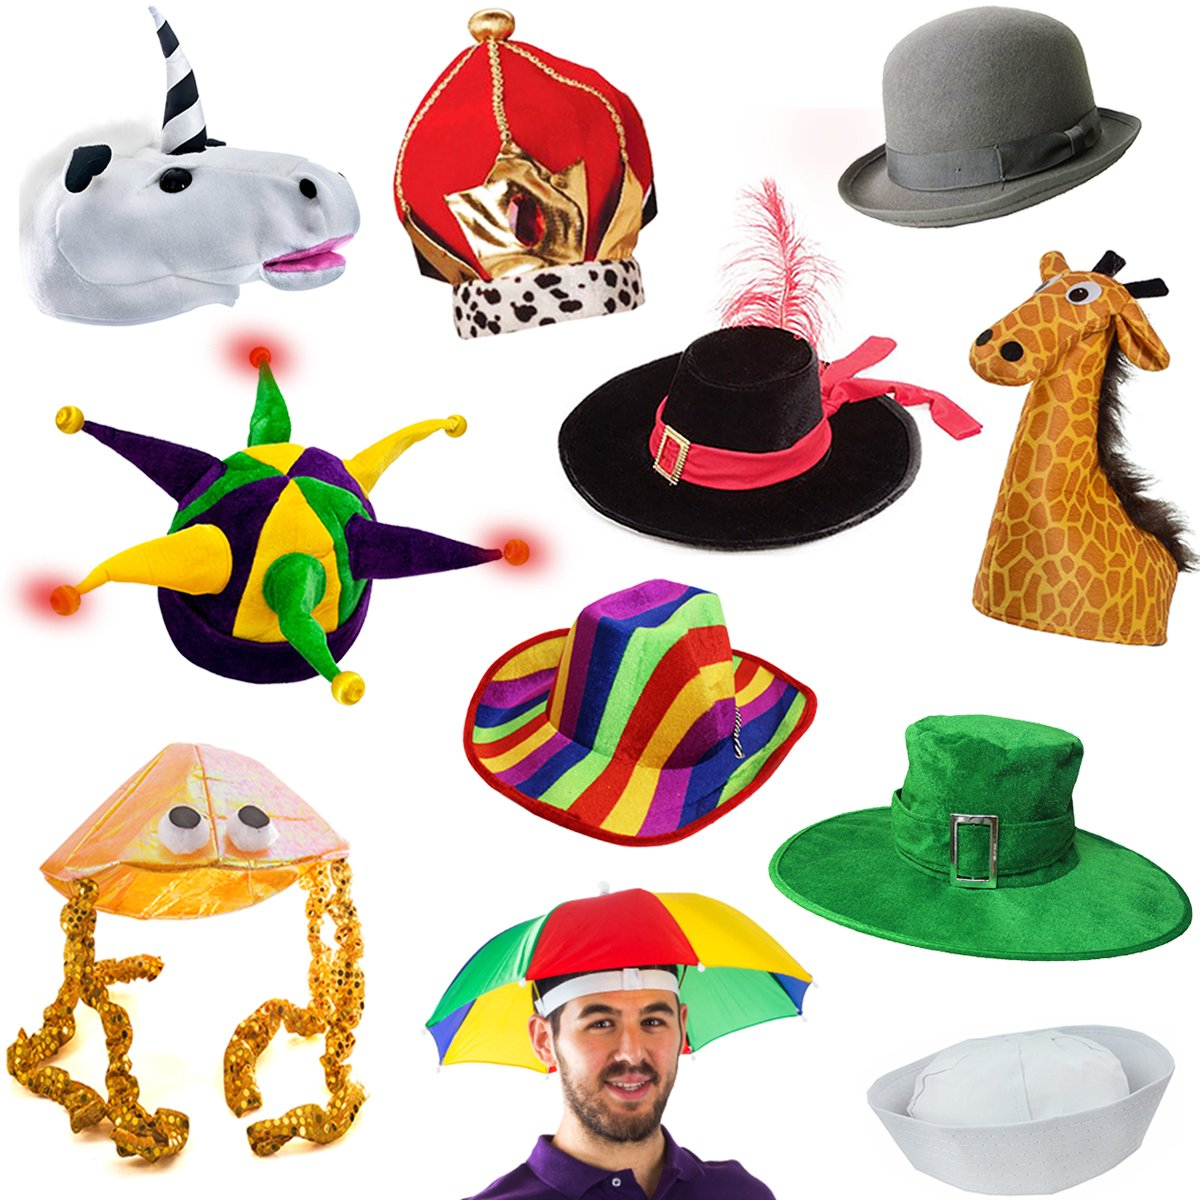 4dfbdfc08d7 Amazon.com  6 Assorted Dress Up Costume   Party Hats by Funny Party Hats (6  Adult Costume Hats)  Kitchen   Dining